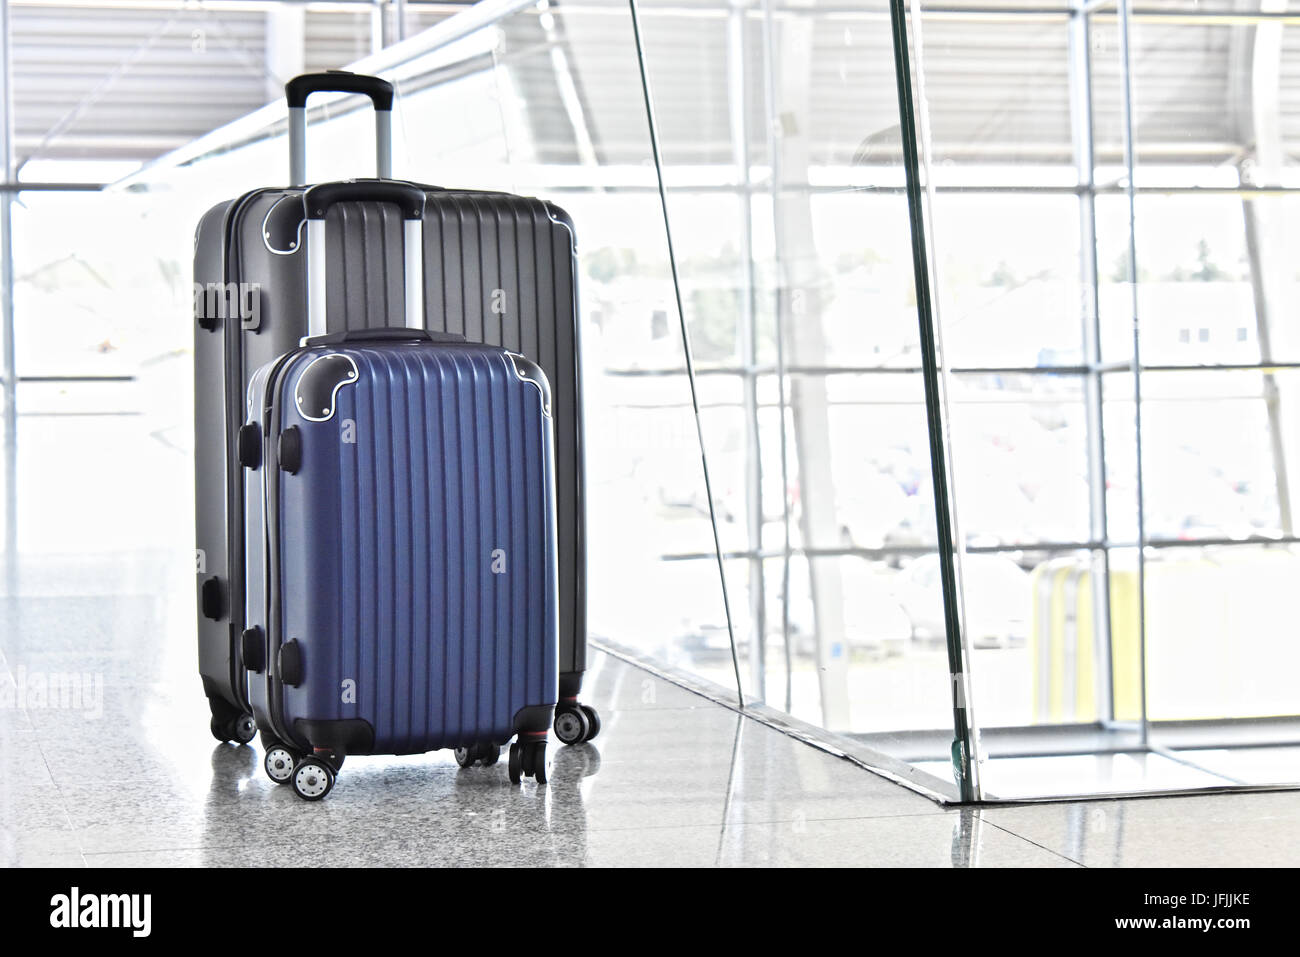 Two plastic travel suitcases in the airport hall. - Stock Image